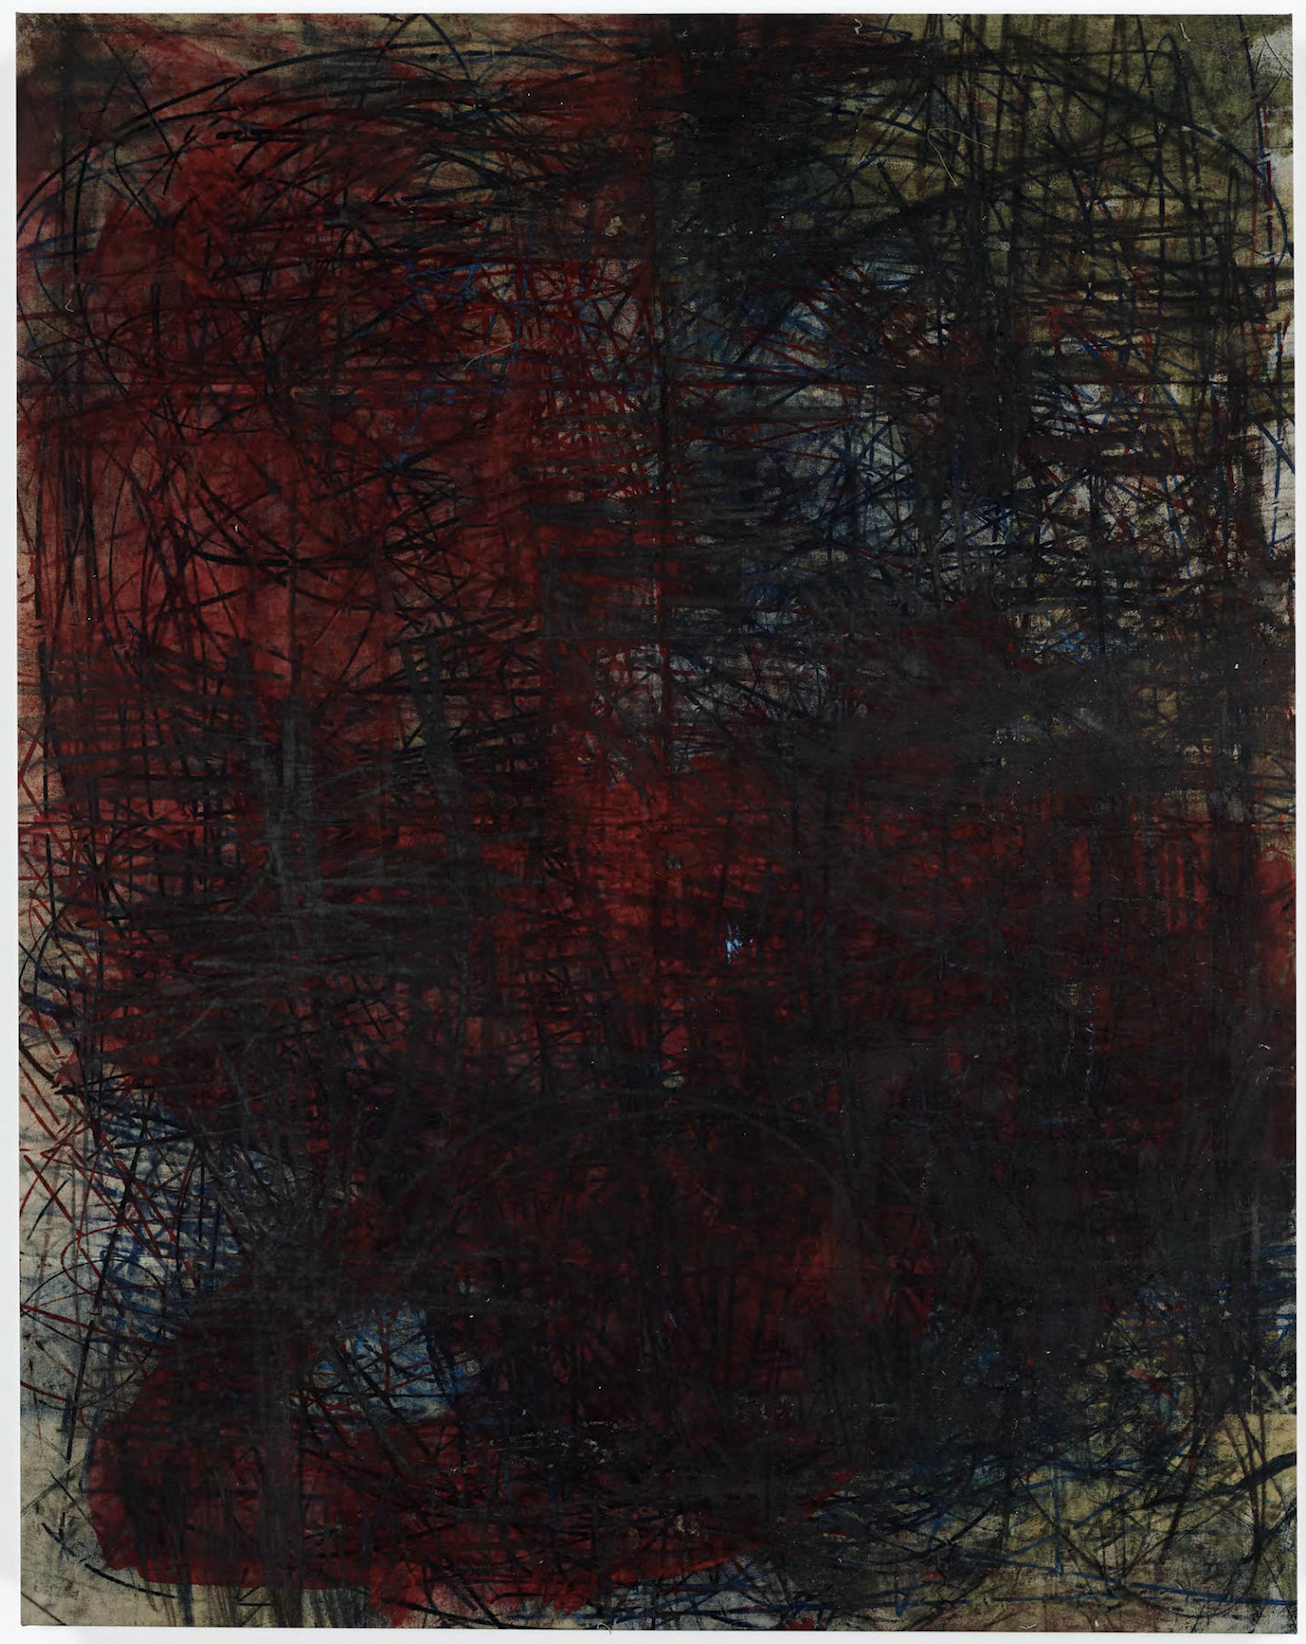 Oscar Murillo  (Untitled) Catalyst , 2018 Oil and graphite on canvas 82.75 x 65 in (210 x 165 cm)